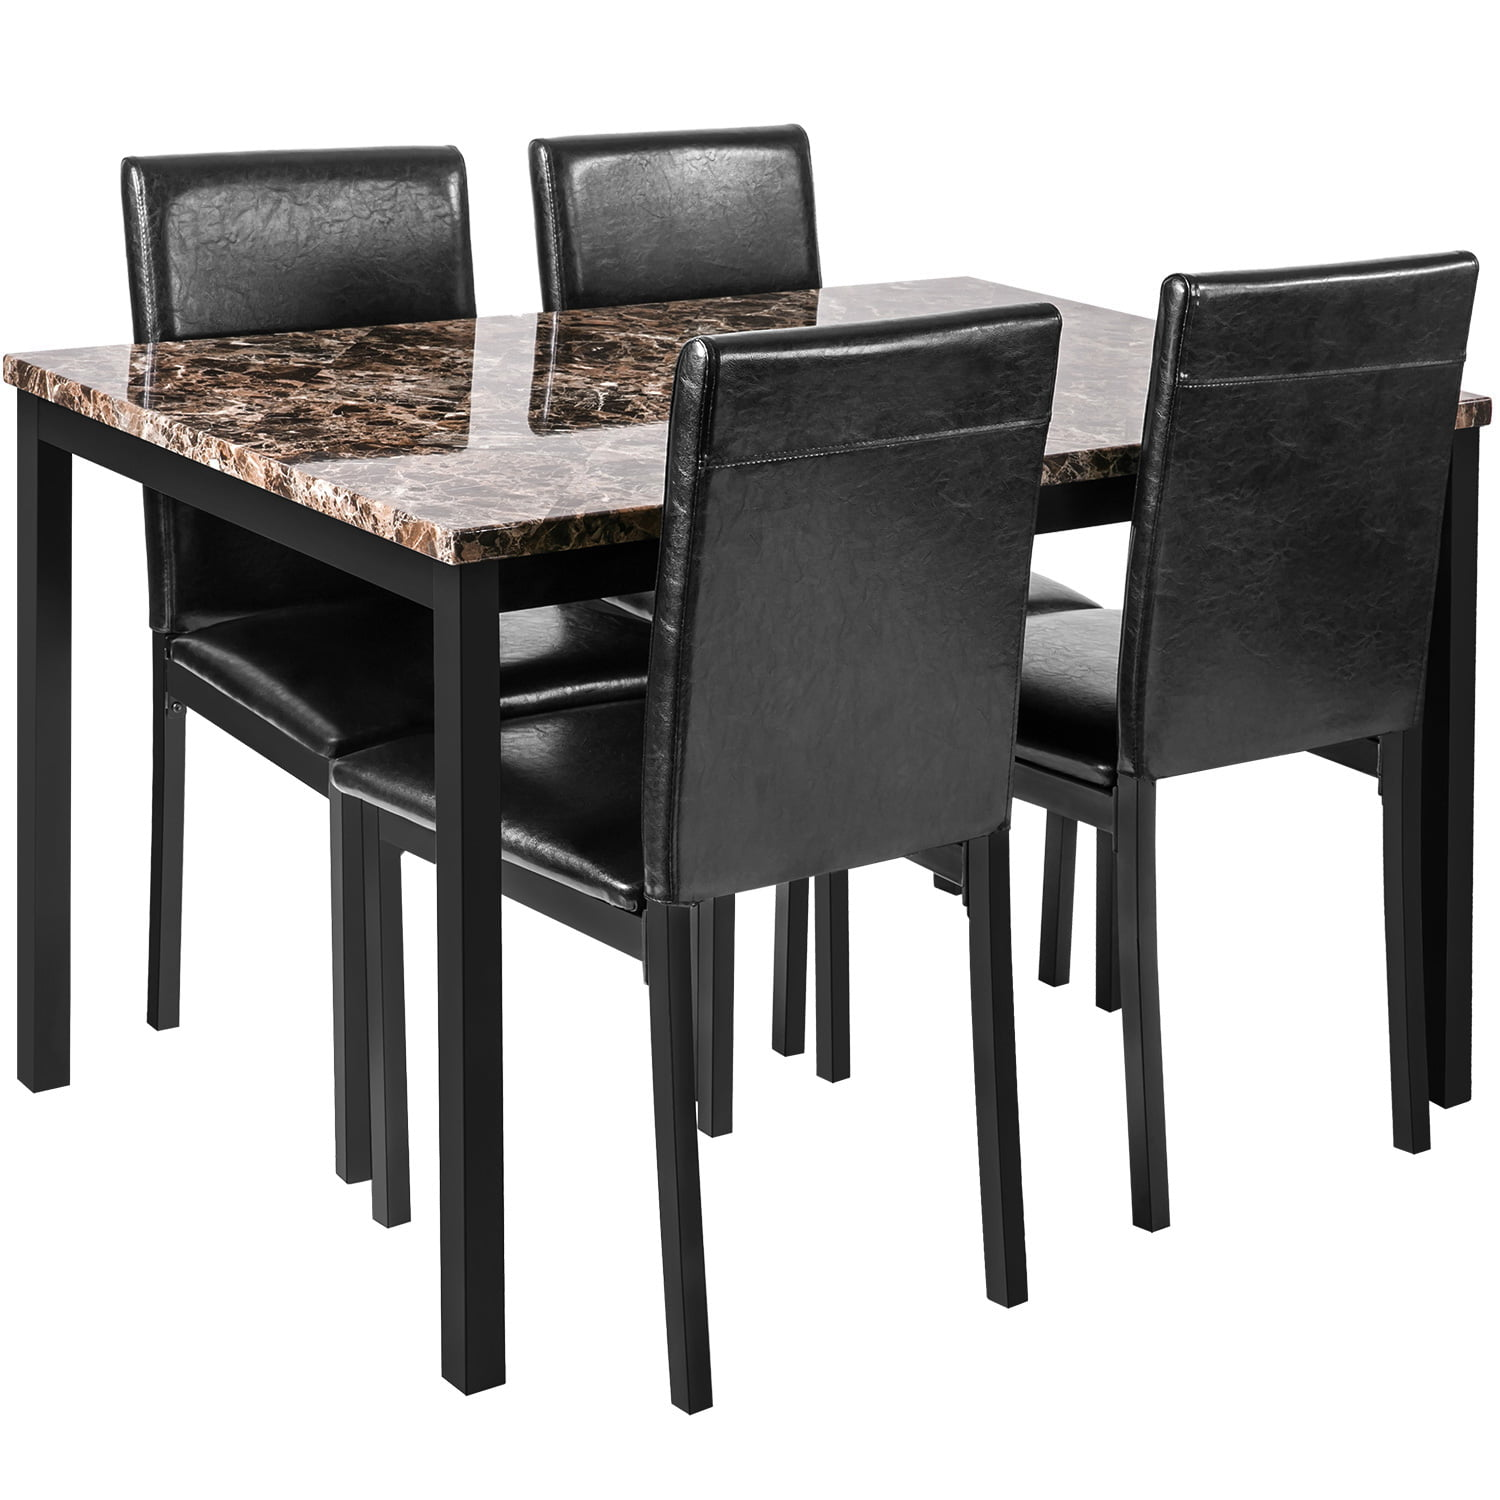 Clearance Dining Sets: CLEARANCE! 5 Piece Dining Table Sets, Metal Dinette Set